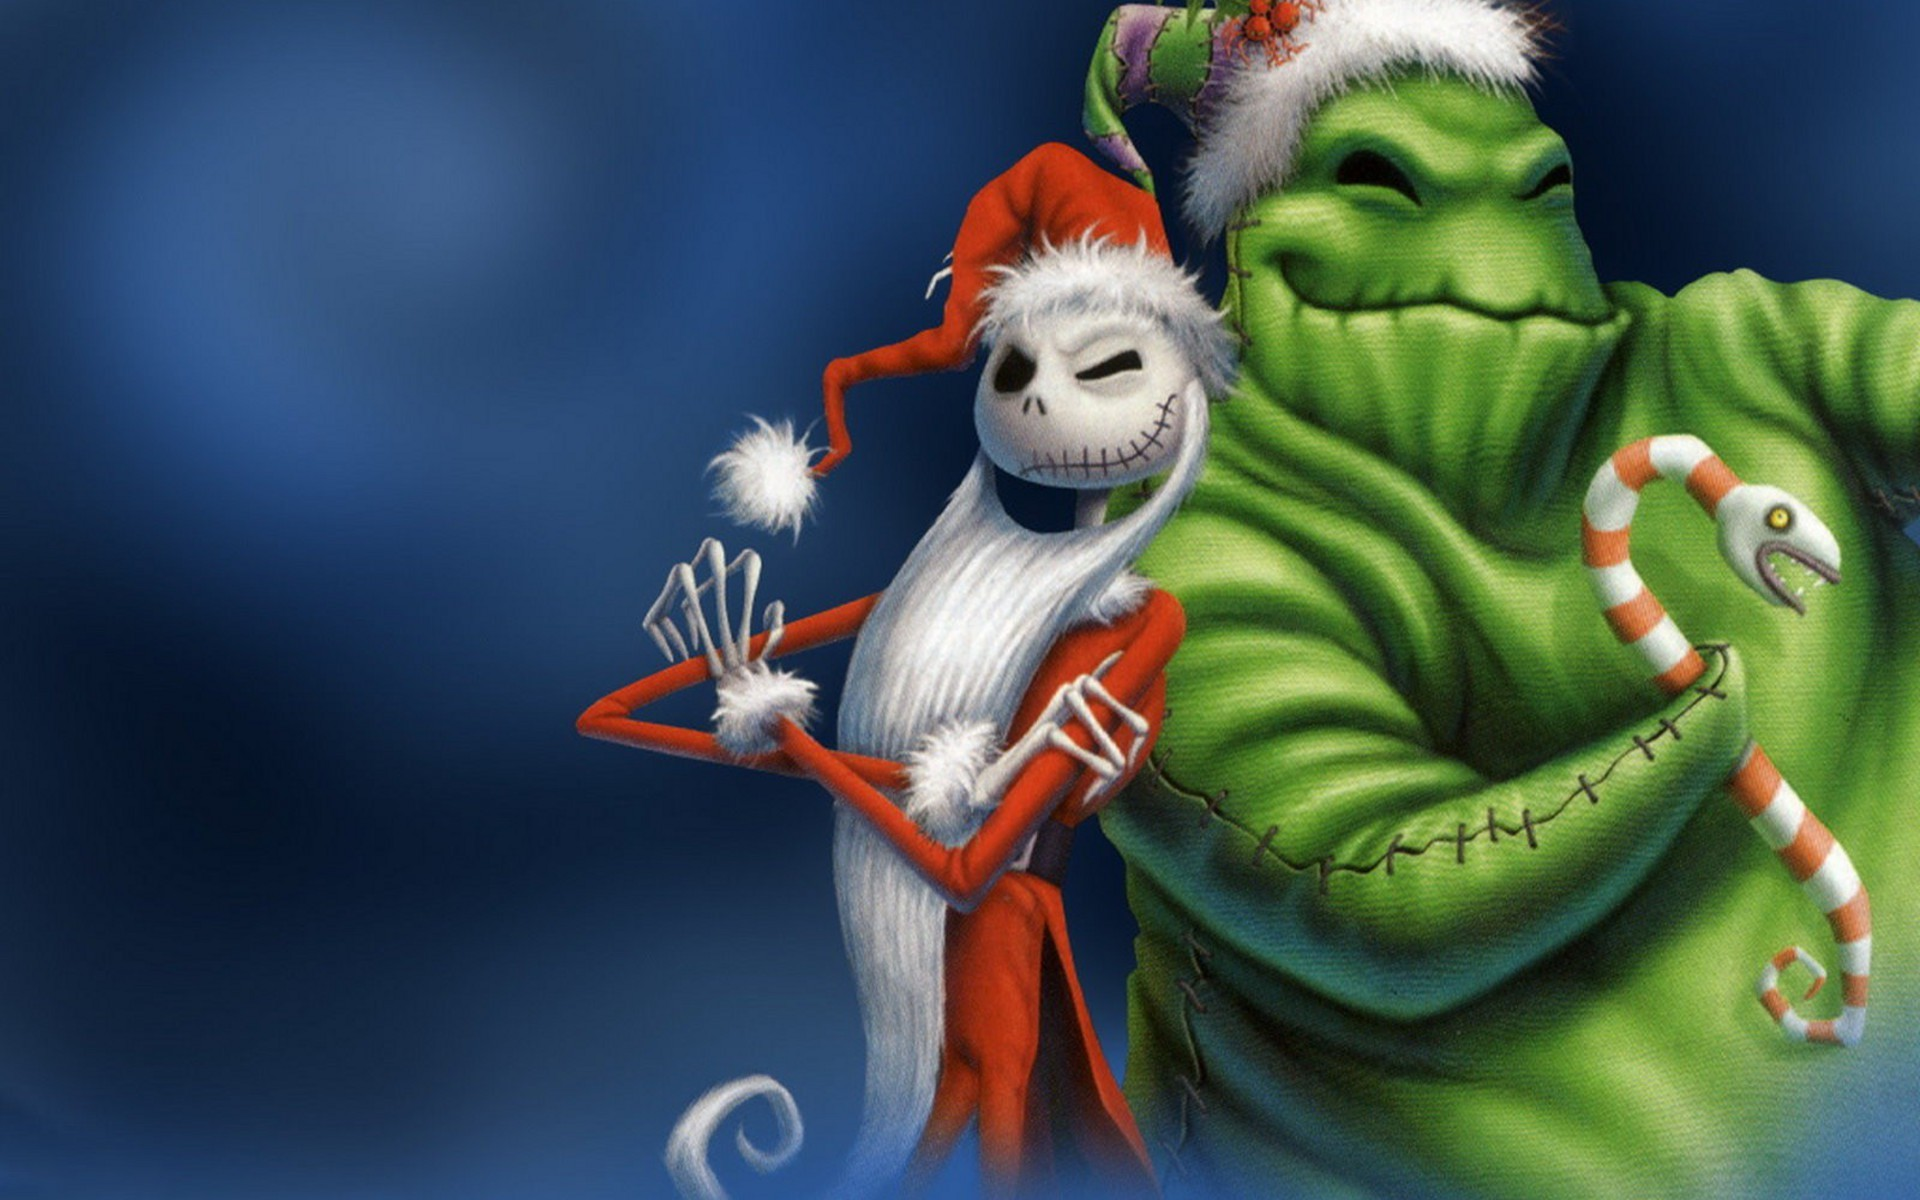 Nightmare Before Christmas Wallpaper Android.Nightmare Before Christmas Desktop Wallpapers 71